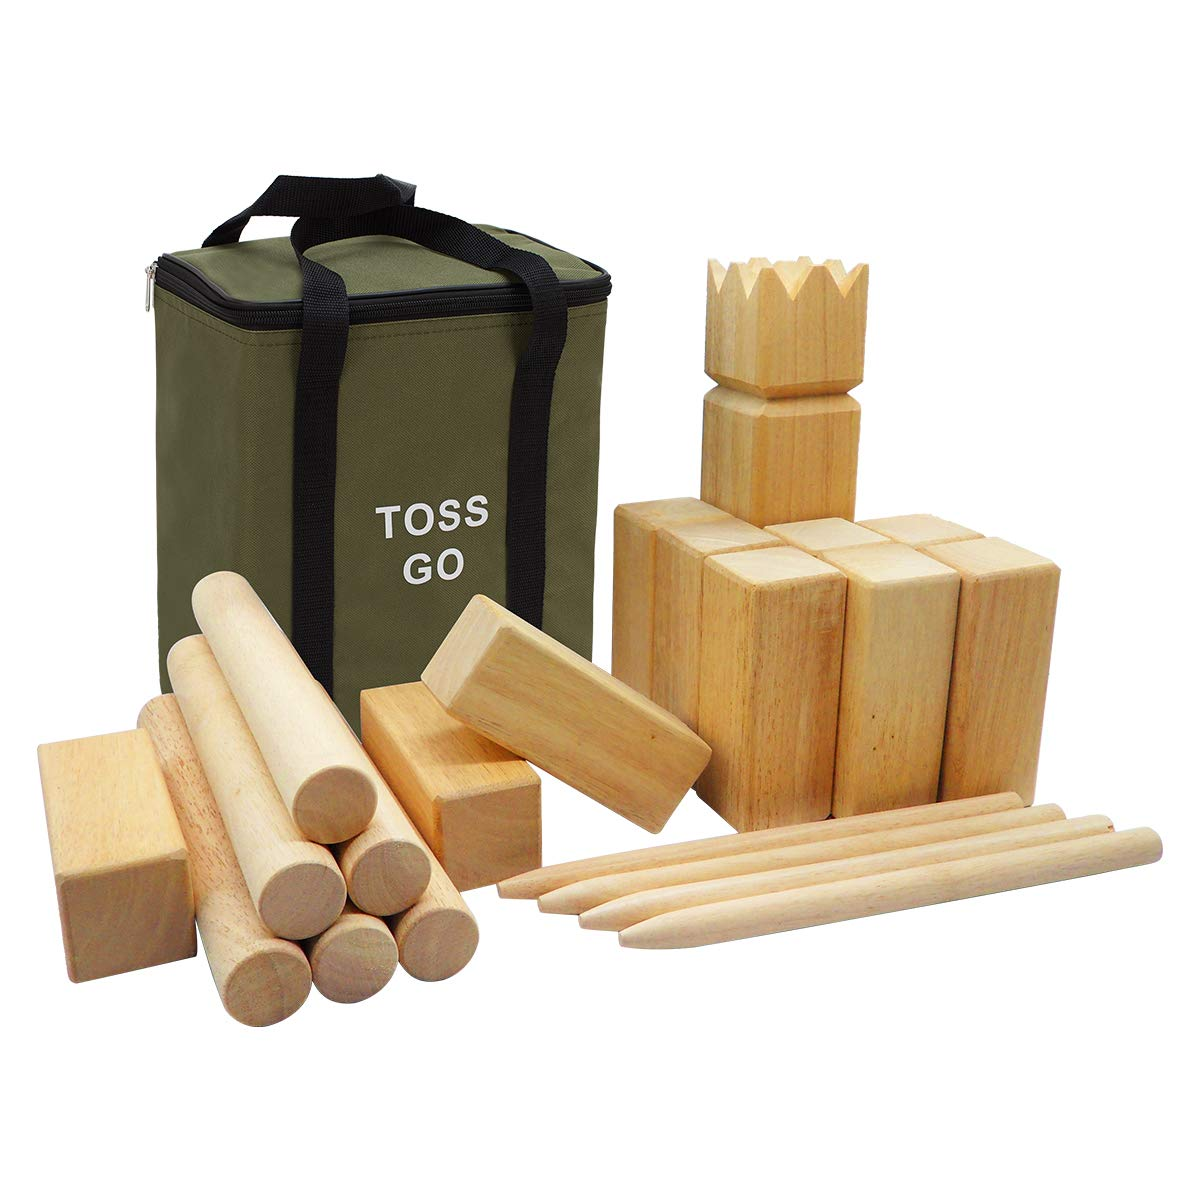 LAWN TIME Toss Go Rubberwood Kubb Game Set - Hardwood Kuub Yard Game - Outdoor Game with Carry Bag